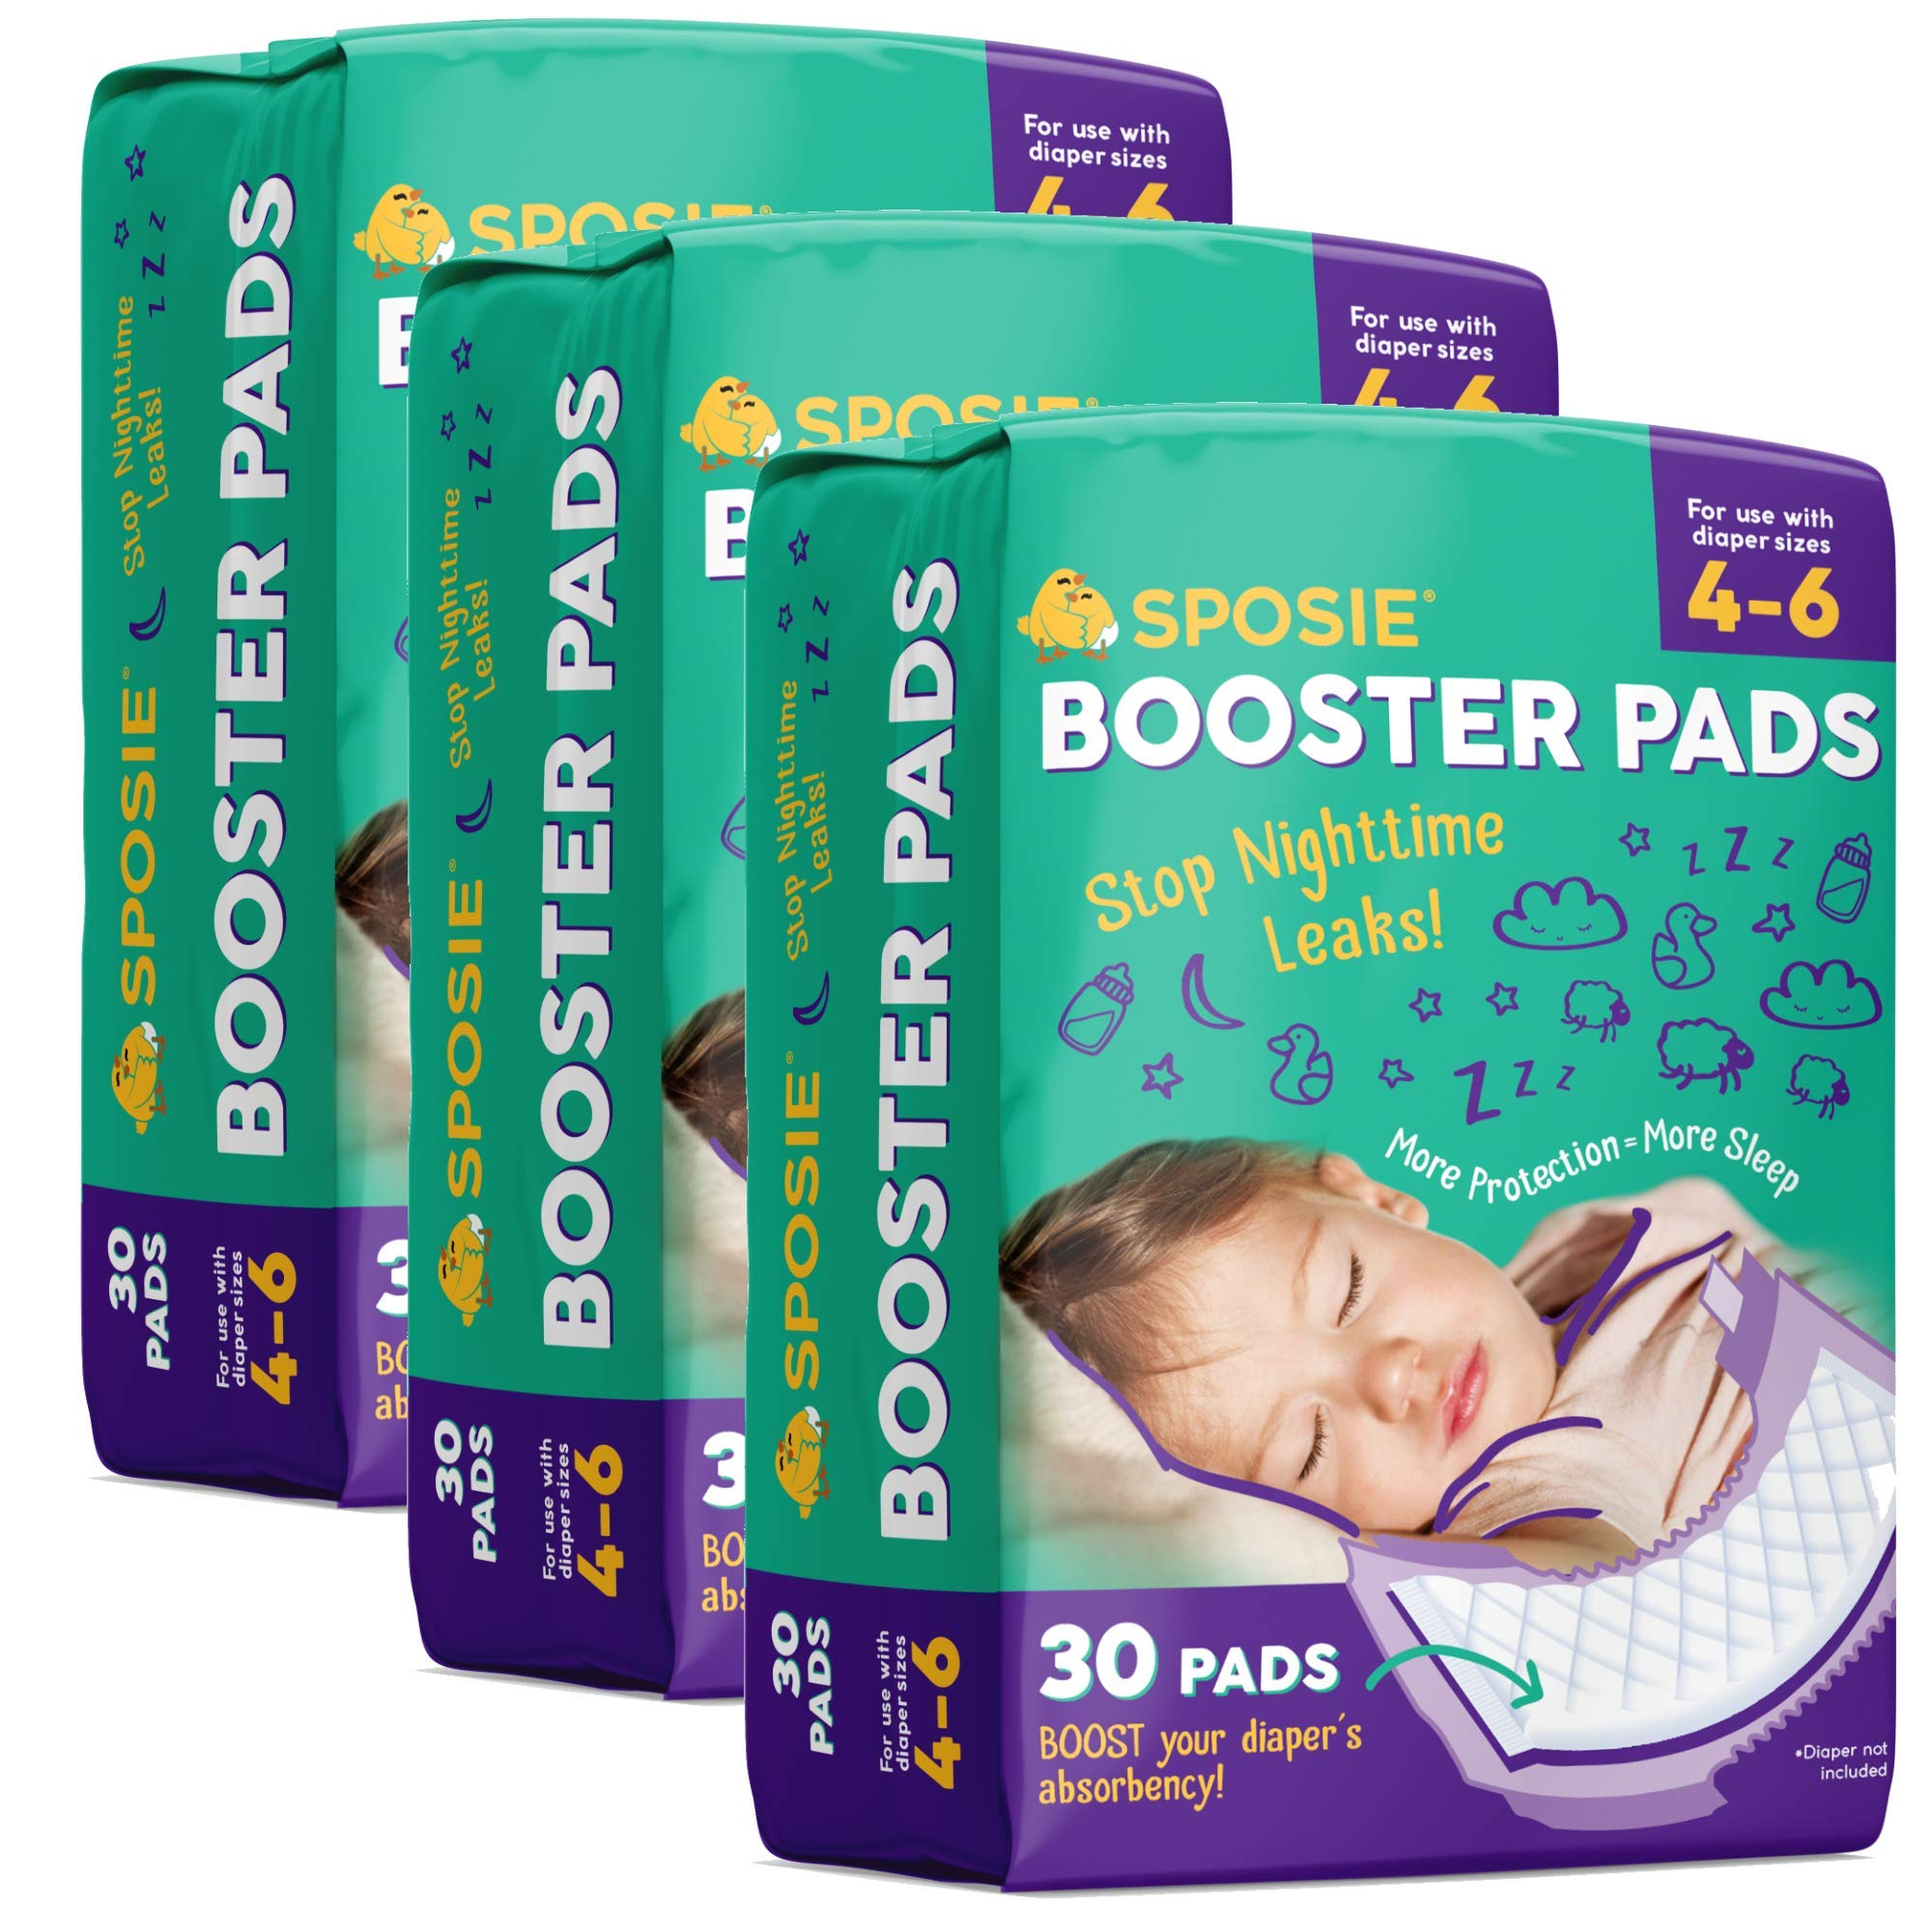 Sposie Booster Pads Diaper Doubler, 90 Count, 3 Packs of 30 Pads, No Adhesive for Easy repositioning, Fits Diaper Sizes 4-6